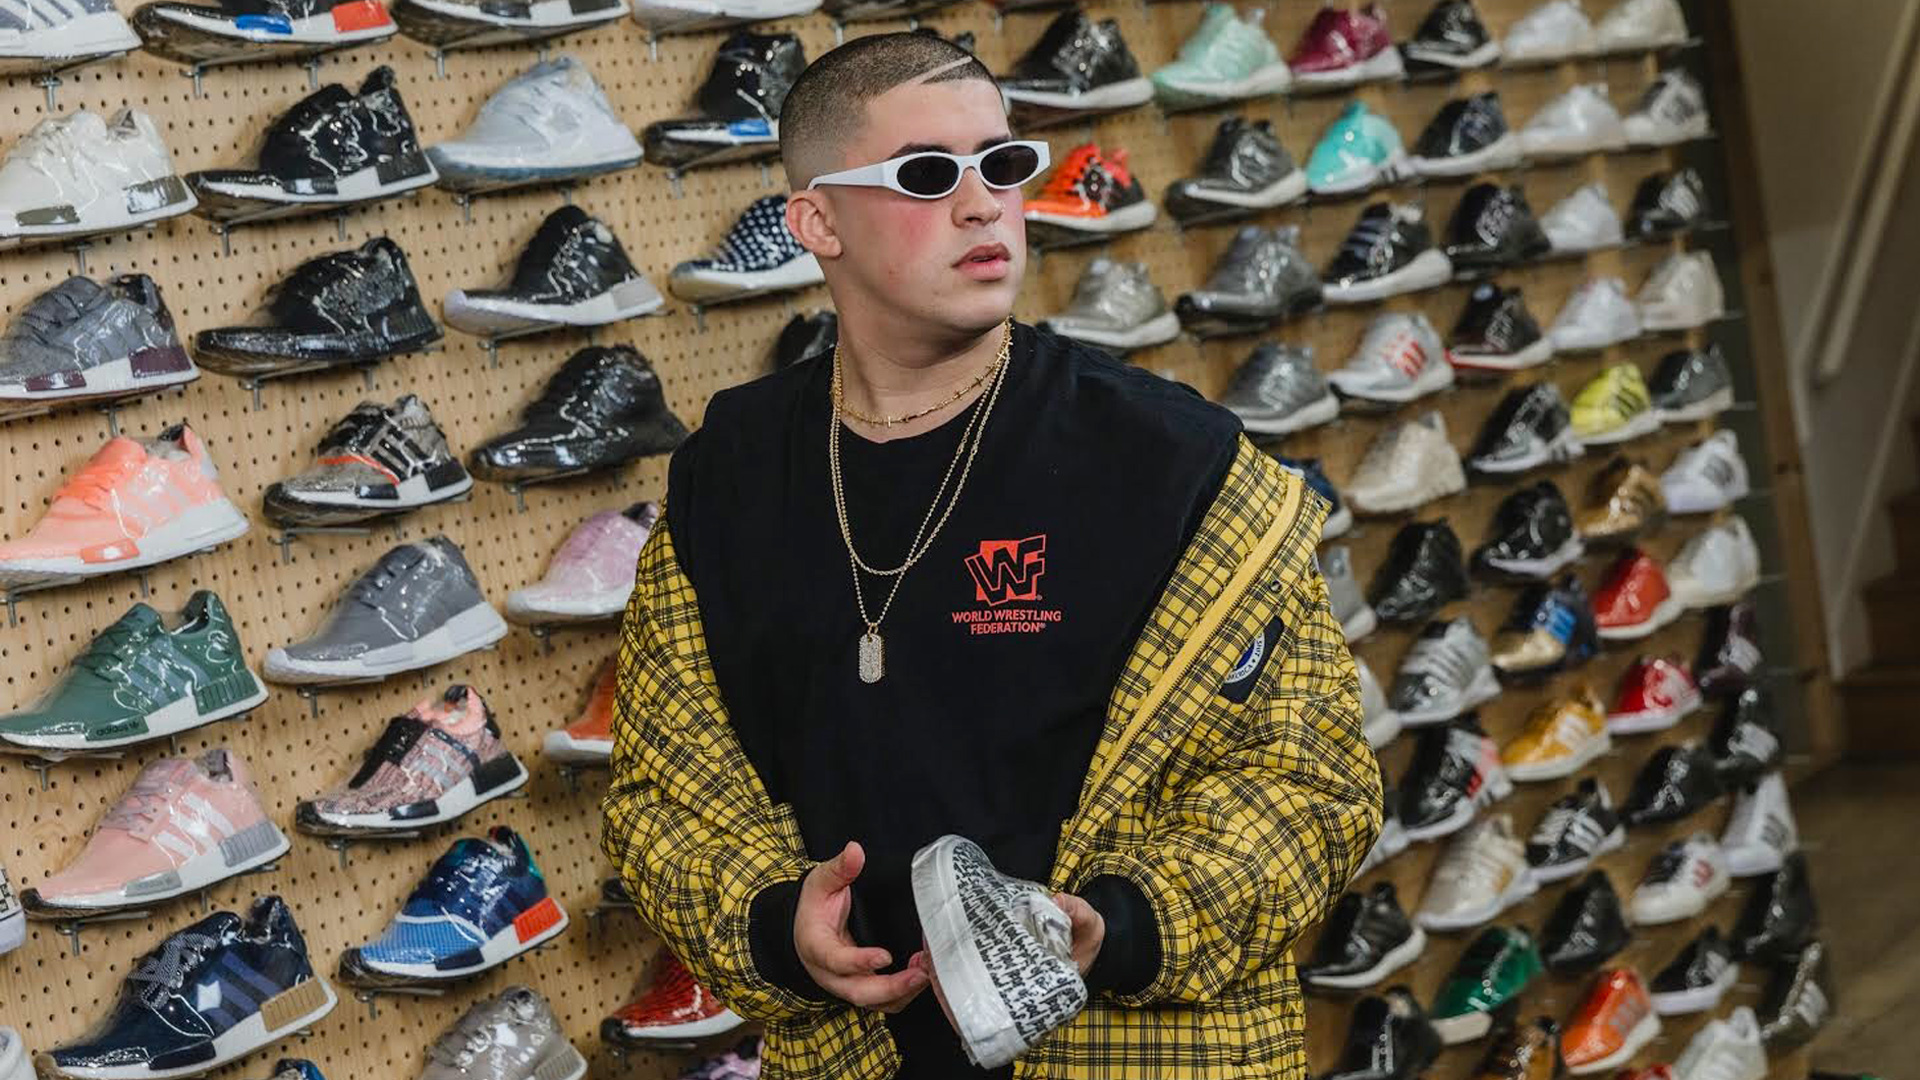 Paternal extremadamente telegrama  Sneaker Shopping' with Bad Bunny   Sole Collector